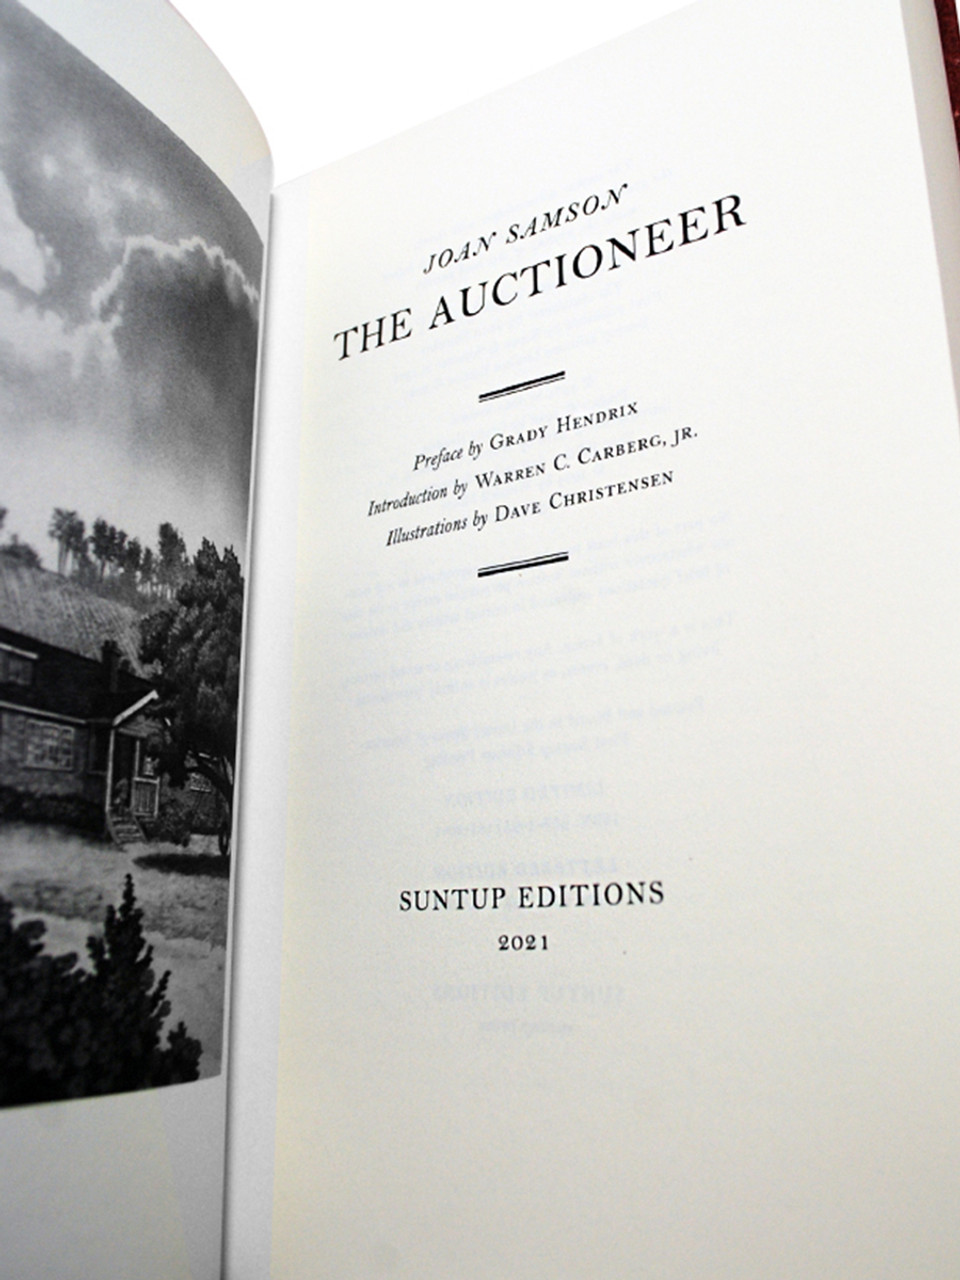 """Joan Samson """"The Auctioneer"""" Signed Limited Edition No. 90 of 250 , Slipcased [Very Fine]"""